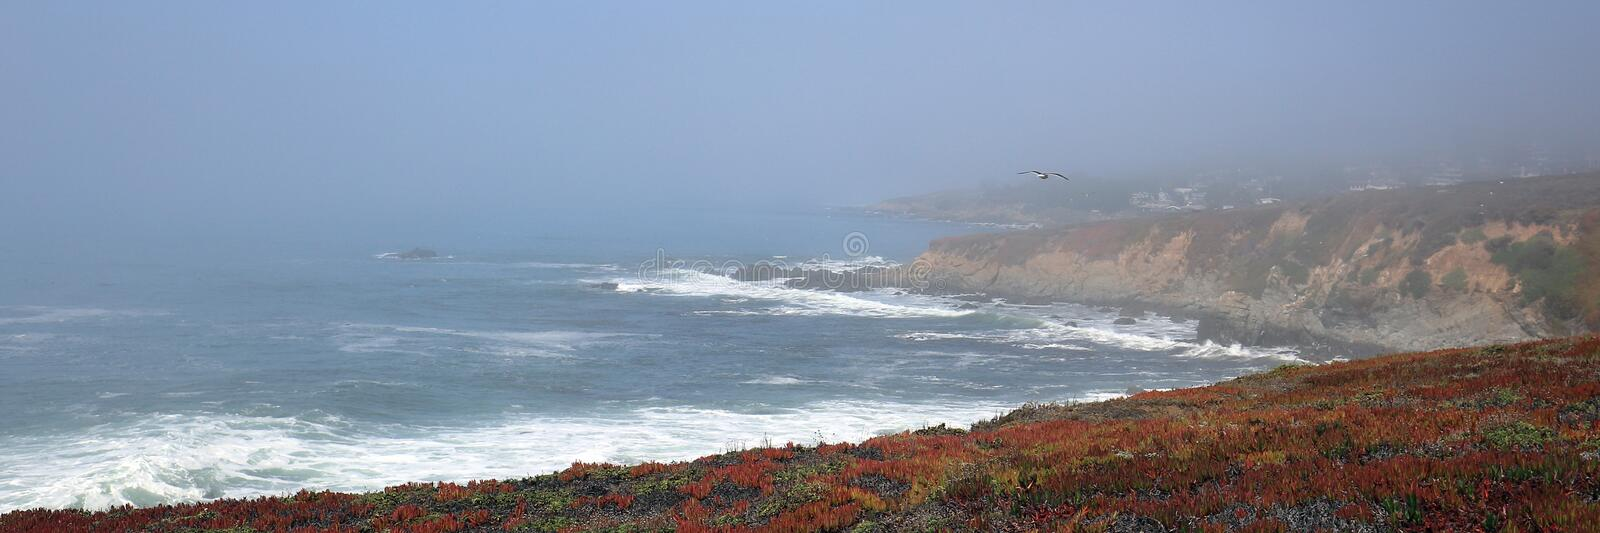 Seagull flying over rugged Central California coastline at Cambria California USA stock images